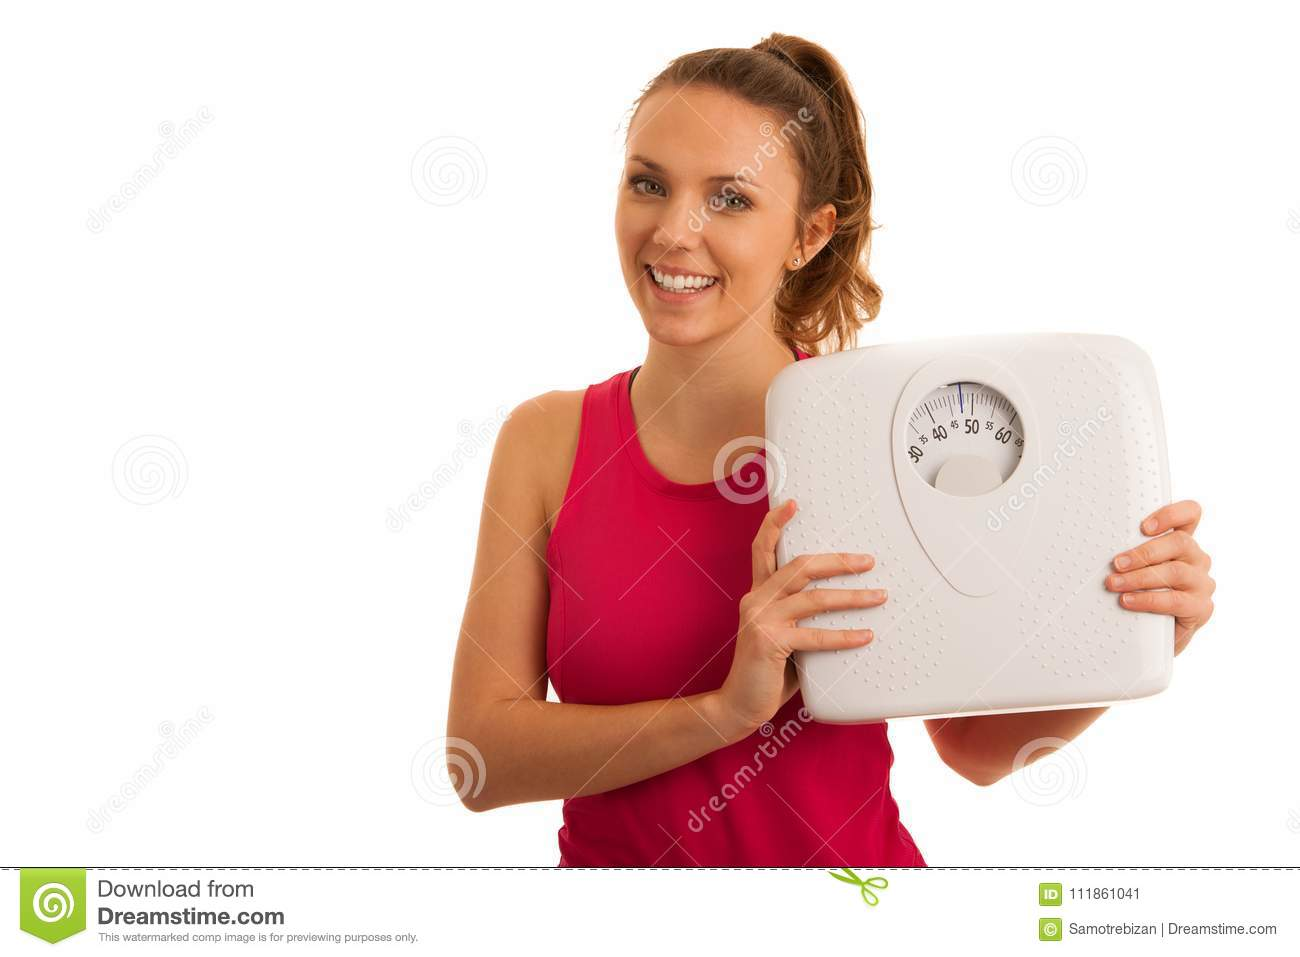 Beautiful young active fit woman hold scale as gesture of loosing weight isolated over white background - weight loss